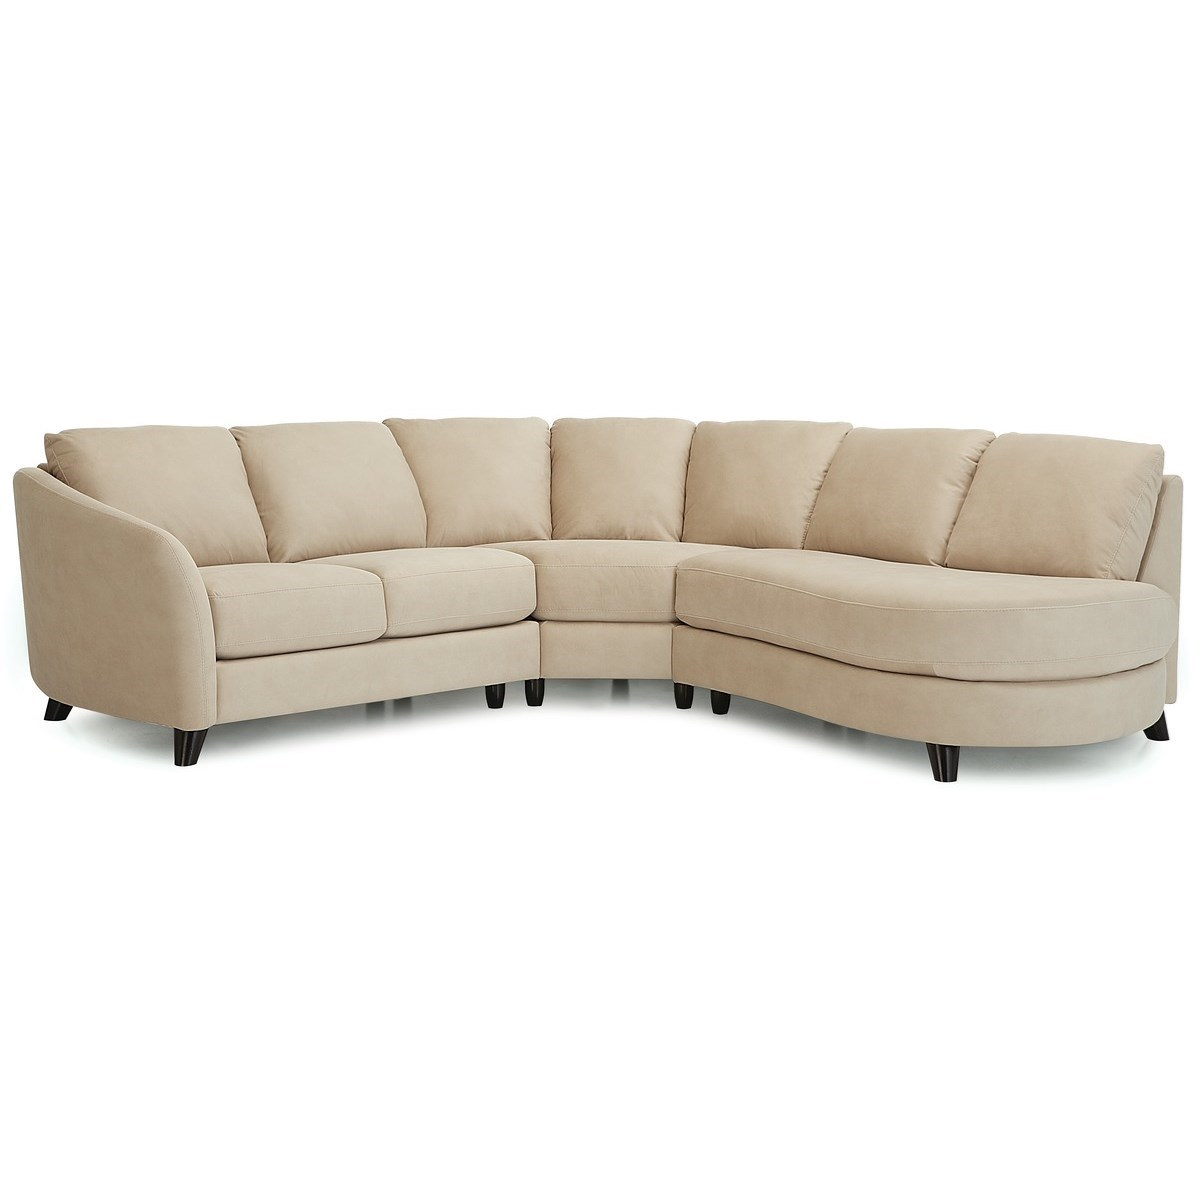 Alula Sectional Sofa by Palliser at Furniture and ApplianceMart